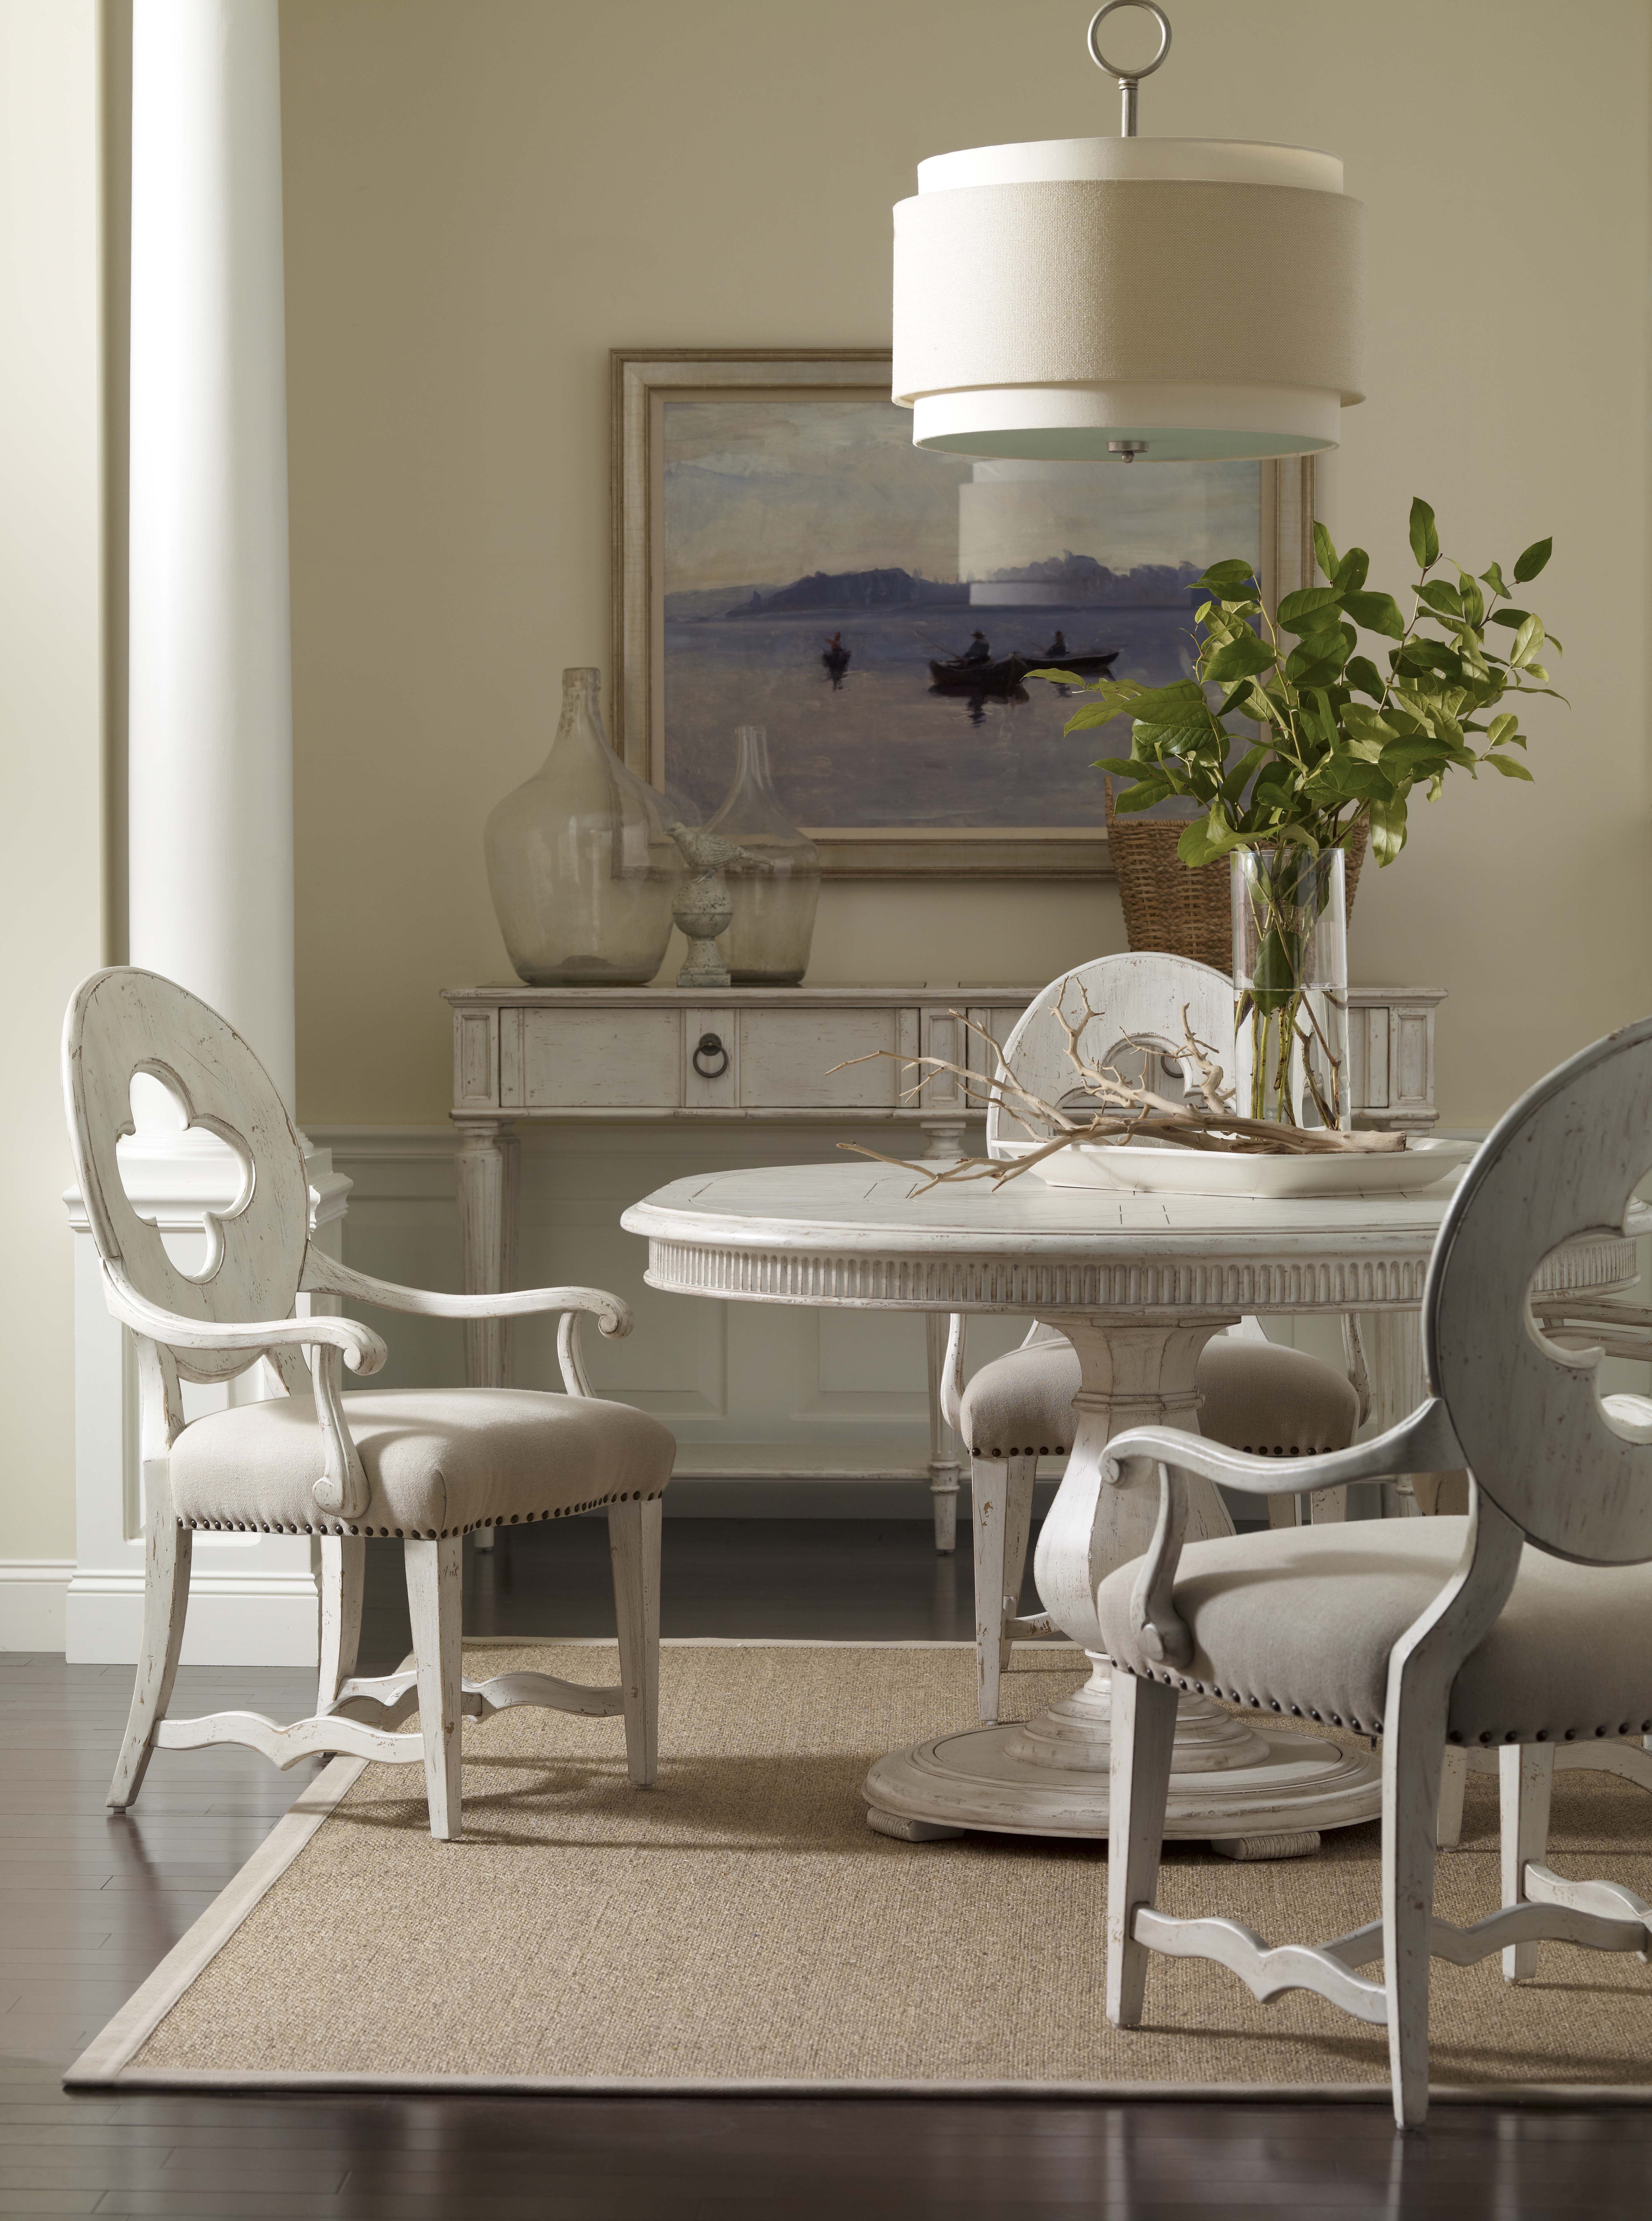 collection one keaton round dining table with the drake arm chair, Esstisch ideennn